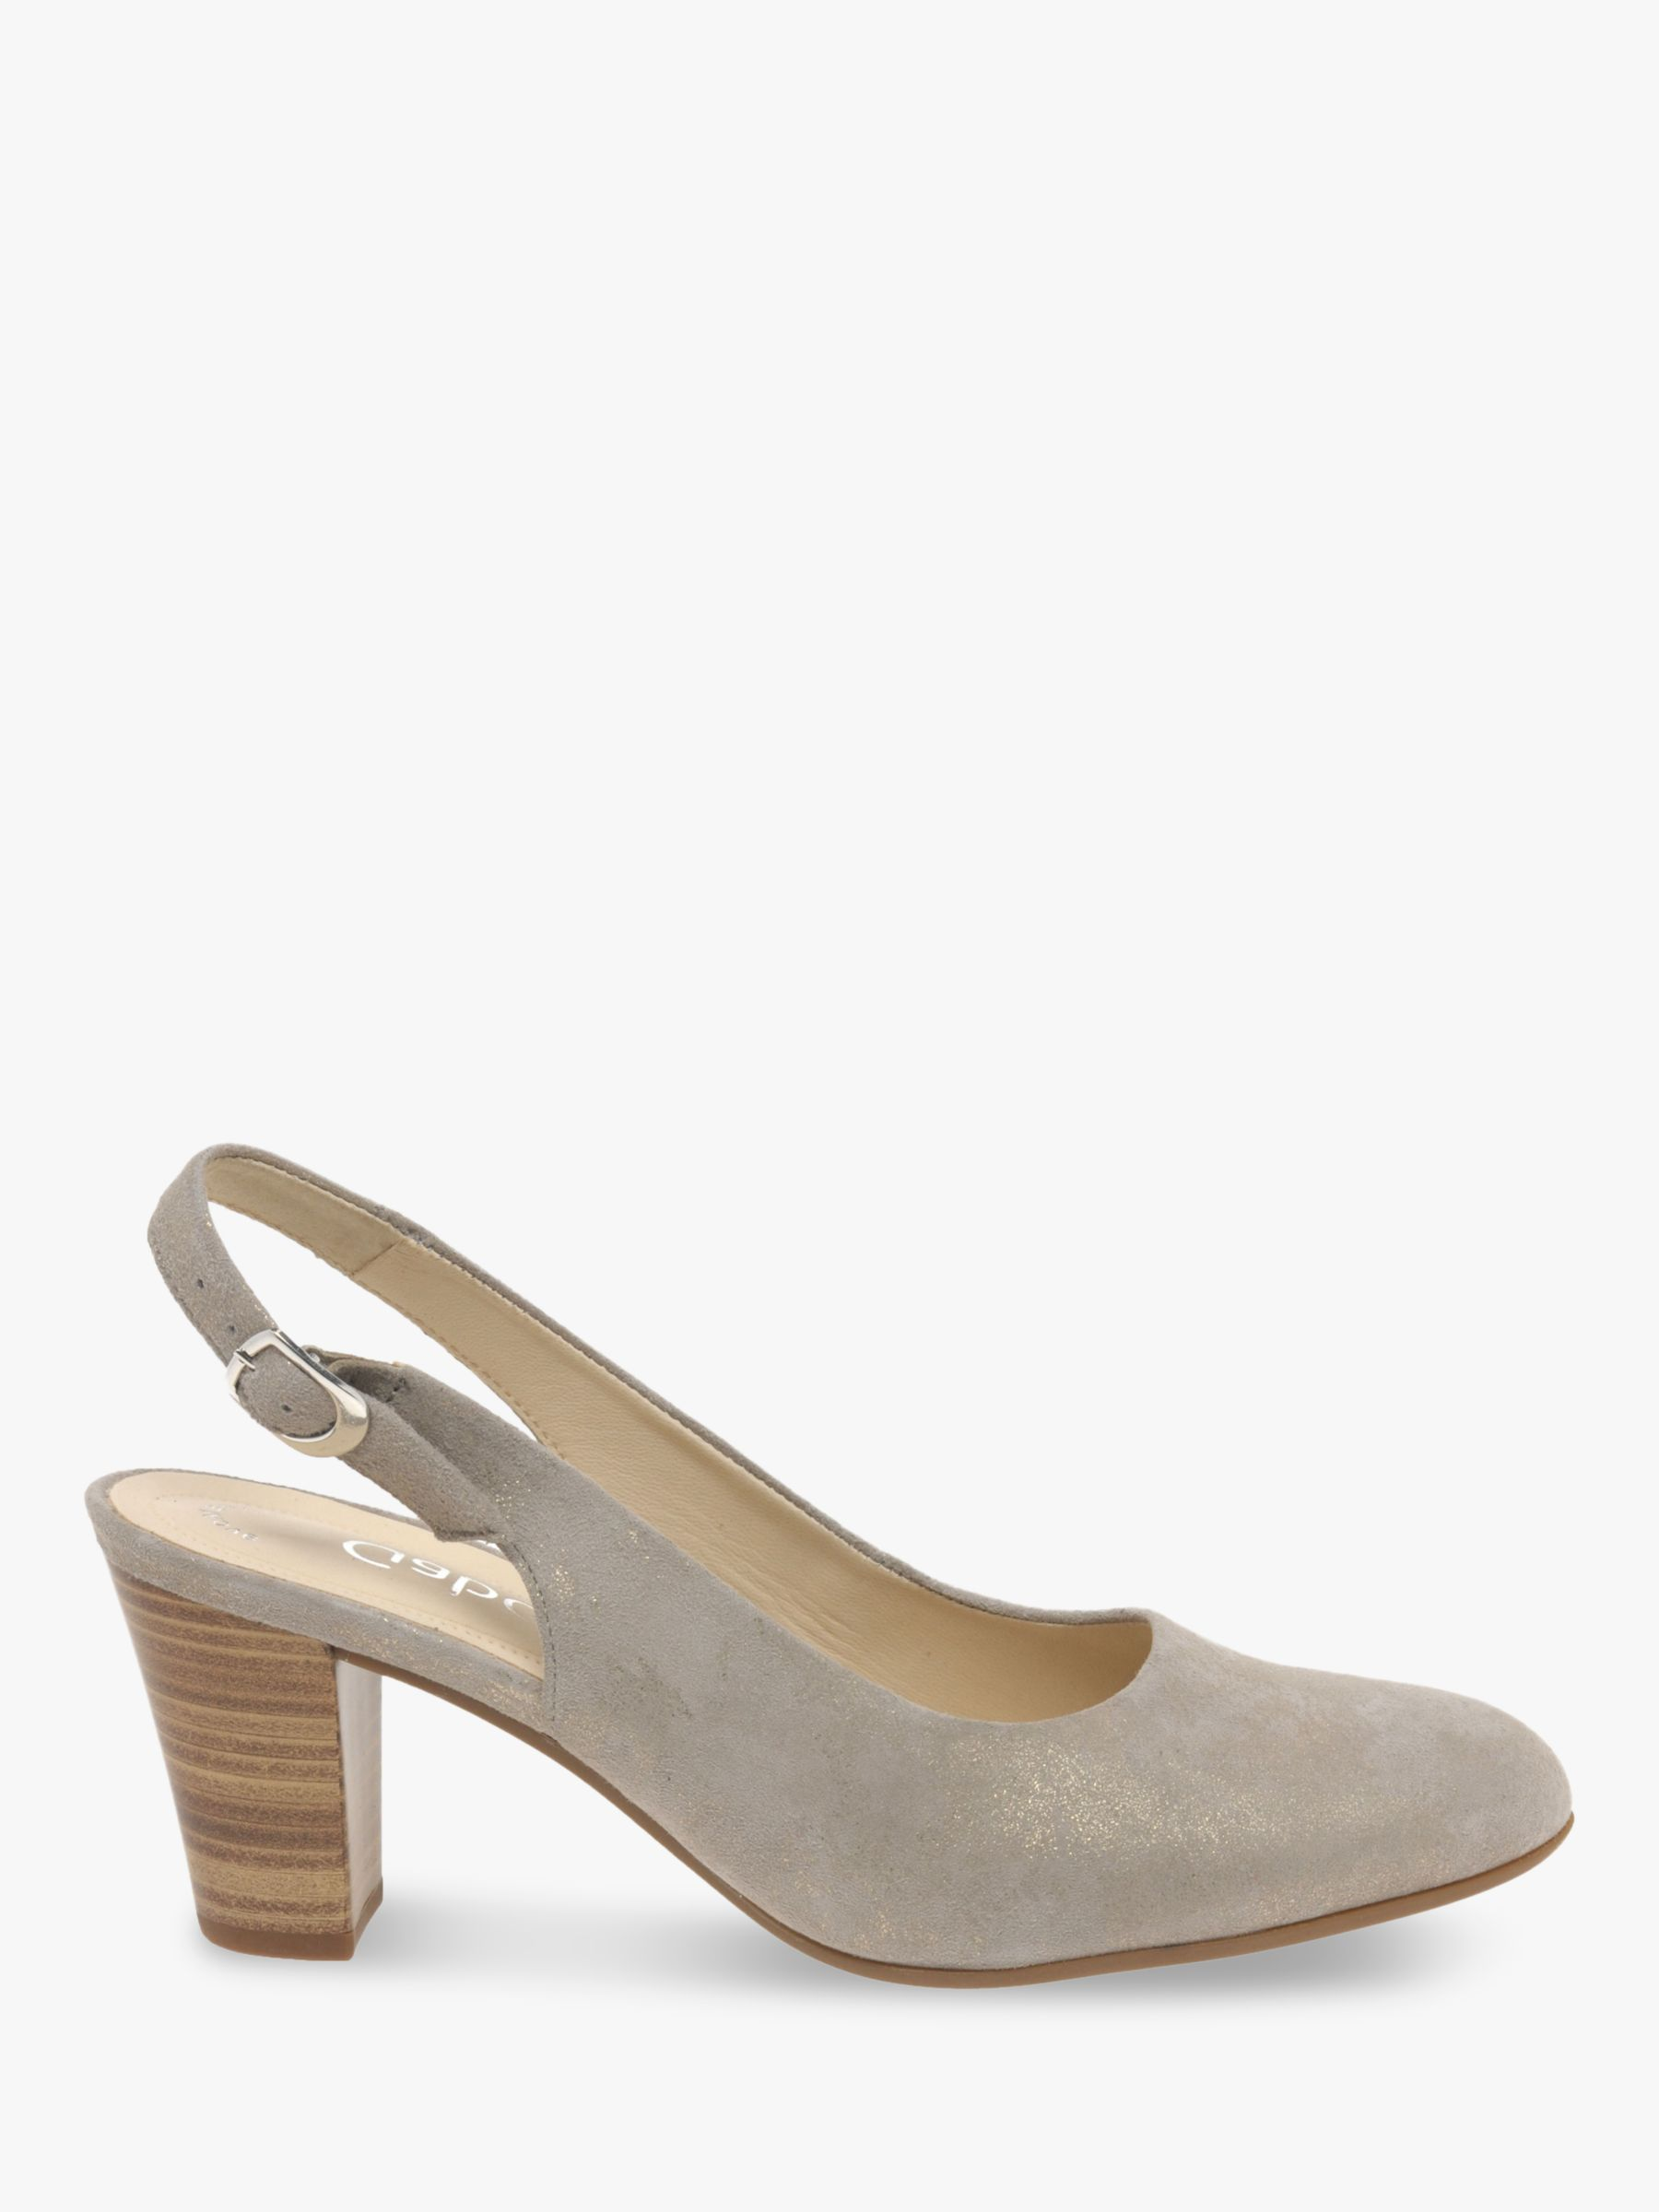 Gabor Gabor Emelda Wide Fit Leather Court Shoes